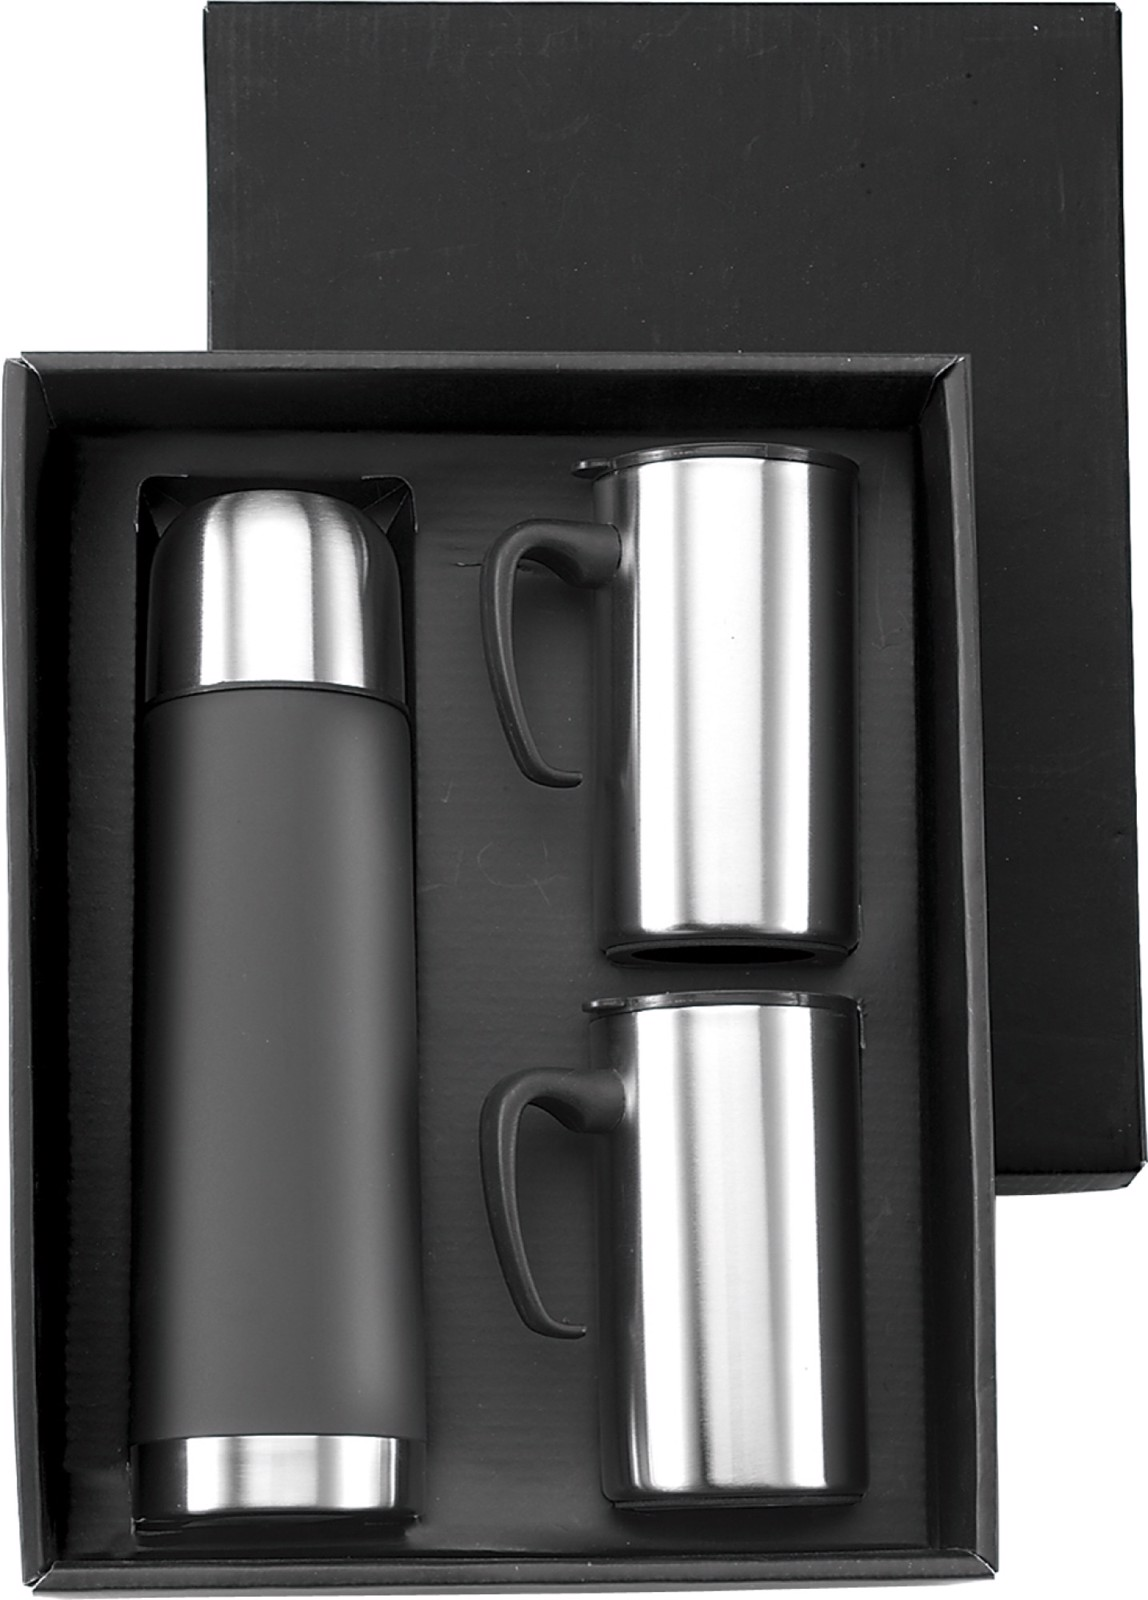 Stainless steel double walled flask - Black